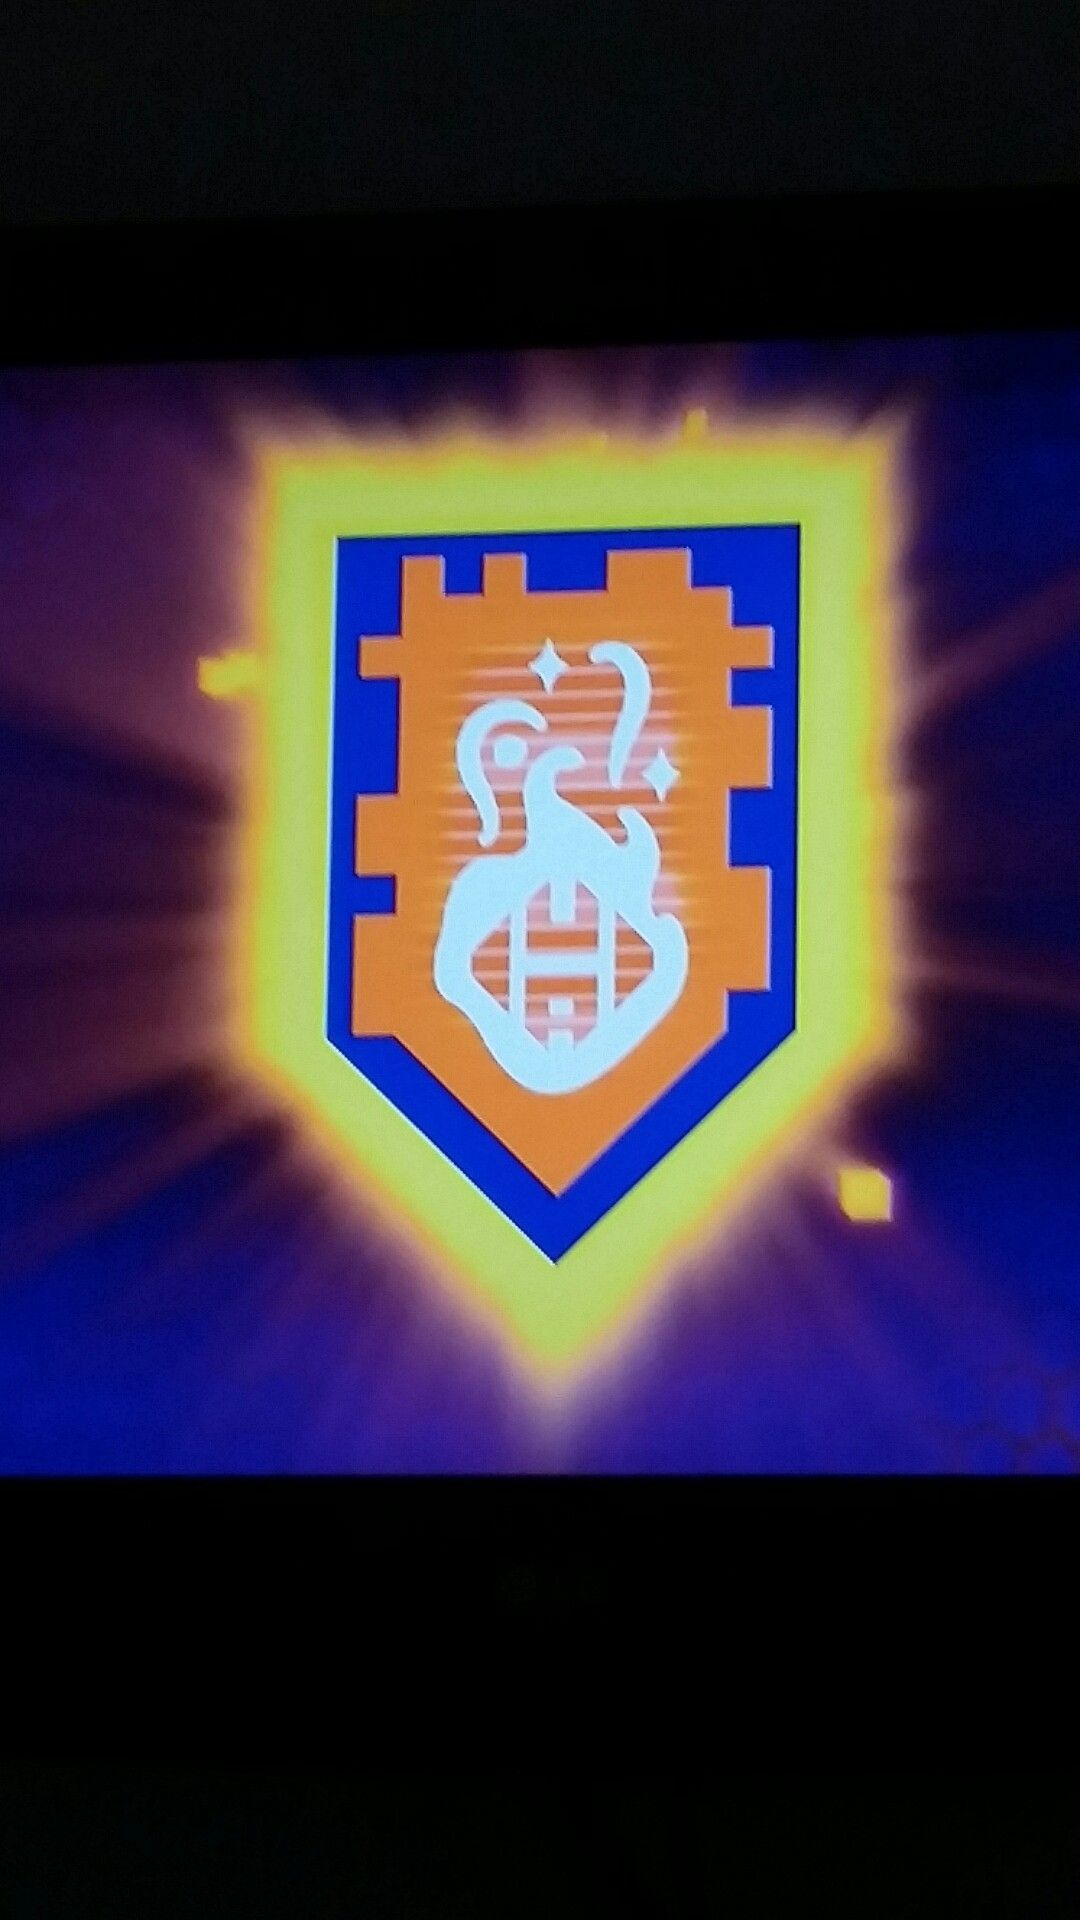 LEGO Nexo Knights shield *new exclusive* from TV show ...